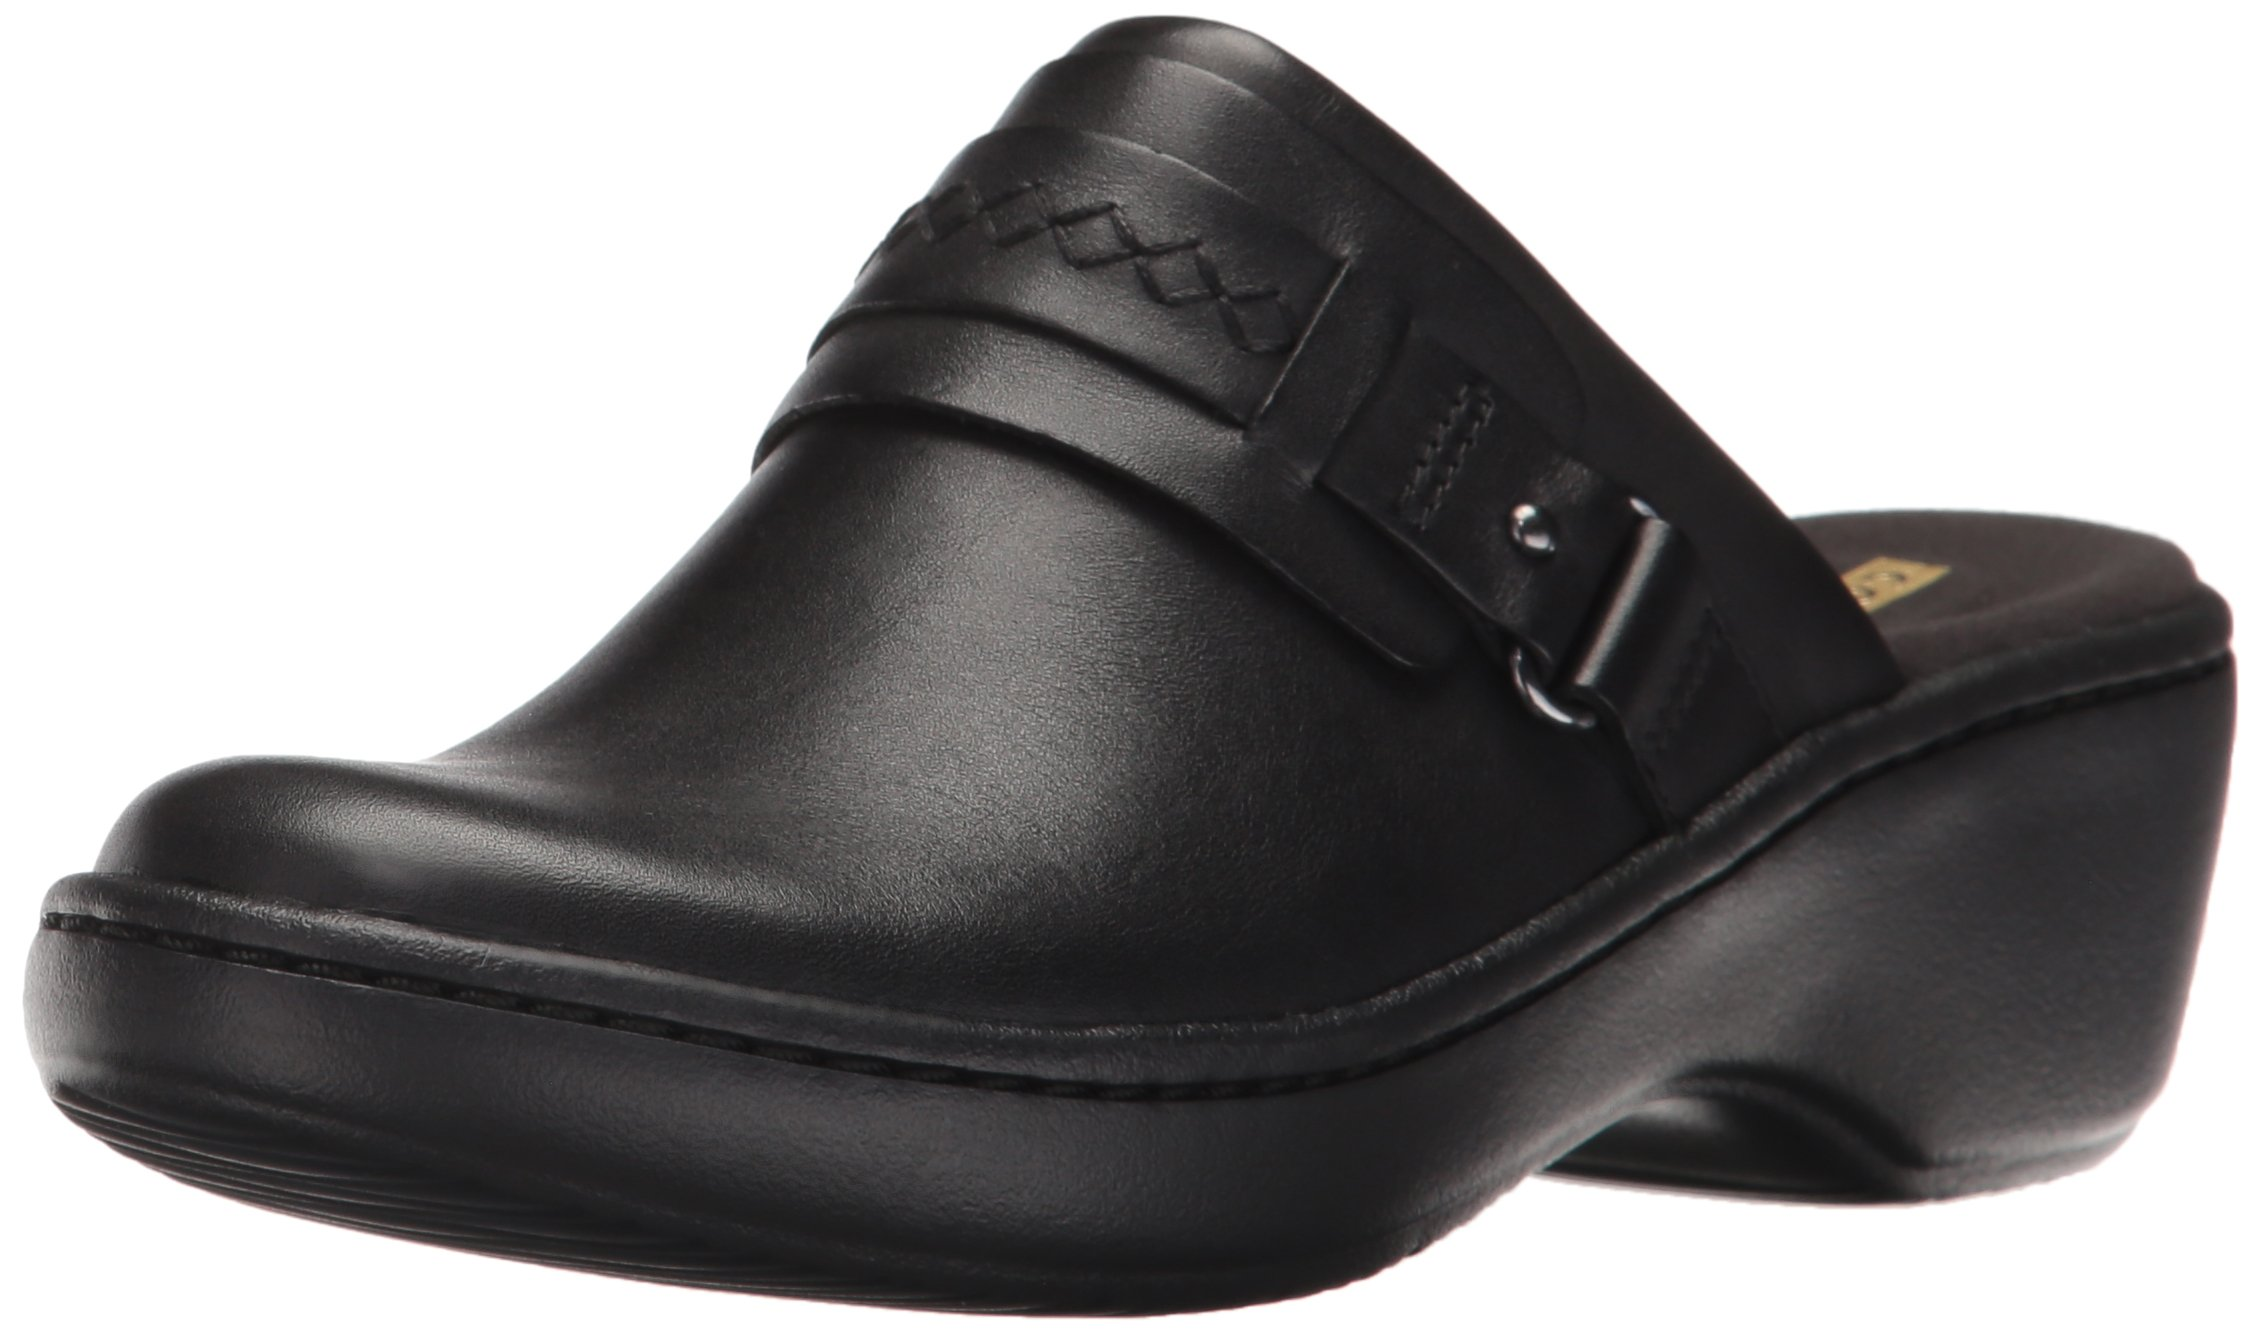 CLARKS Women's Delana Amber Mule, Black Leather, 9.5 M US